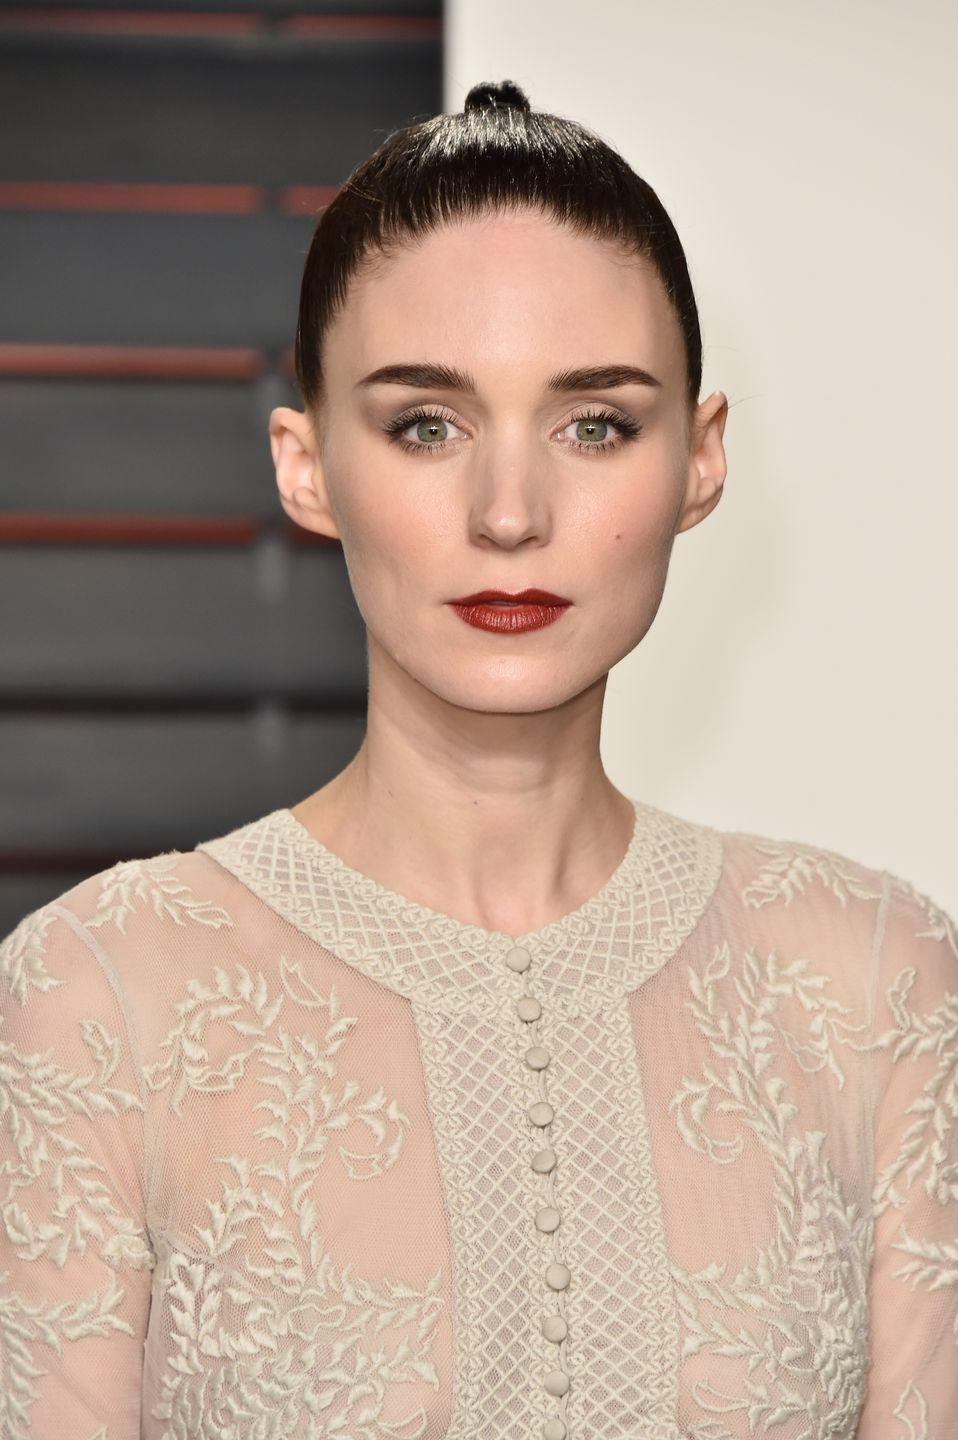 """<p>Mara hated the lack of diversity in the 2015 film, <em>Pan. </em>She told <em><a href=""""https://www.telegraph.co.uk/film/carol/rooney-mara-interview/"""" rel=""""nofollow noopener"""" target=""""_blank"""" data-ylk=""""slk:The Telegraph"""" class=""""link rapid-noclick-resp"""">The Telegraph</a></em> in 2016, """"I really hate, hate, hate that I am on that side of the whitewashing conversation. I really do. I don't ever want to be on that side of it again. I can understand why people were upset and frustrated.""""</p>"""